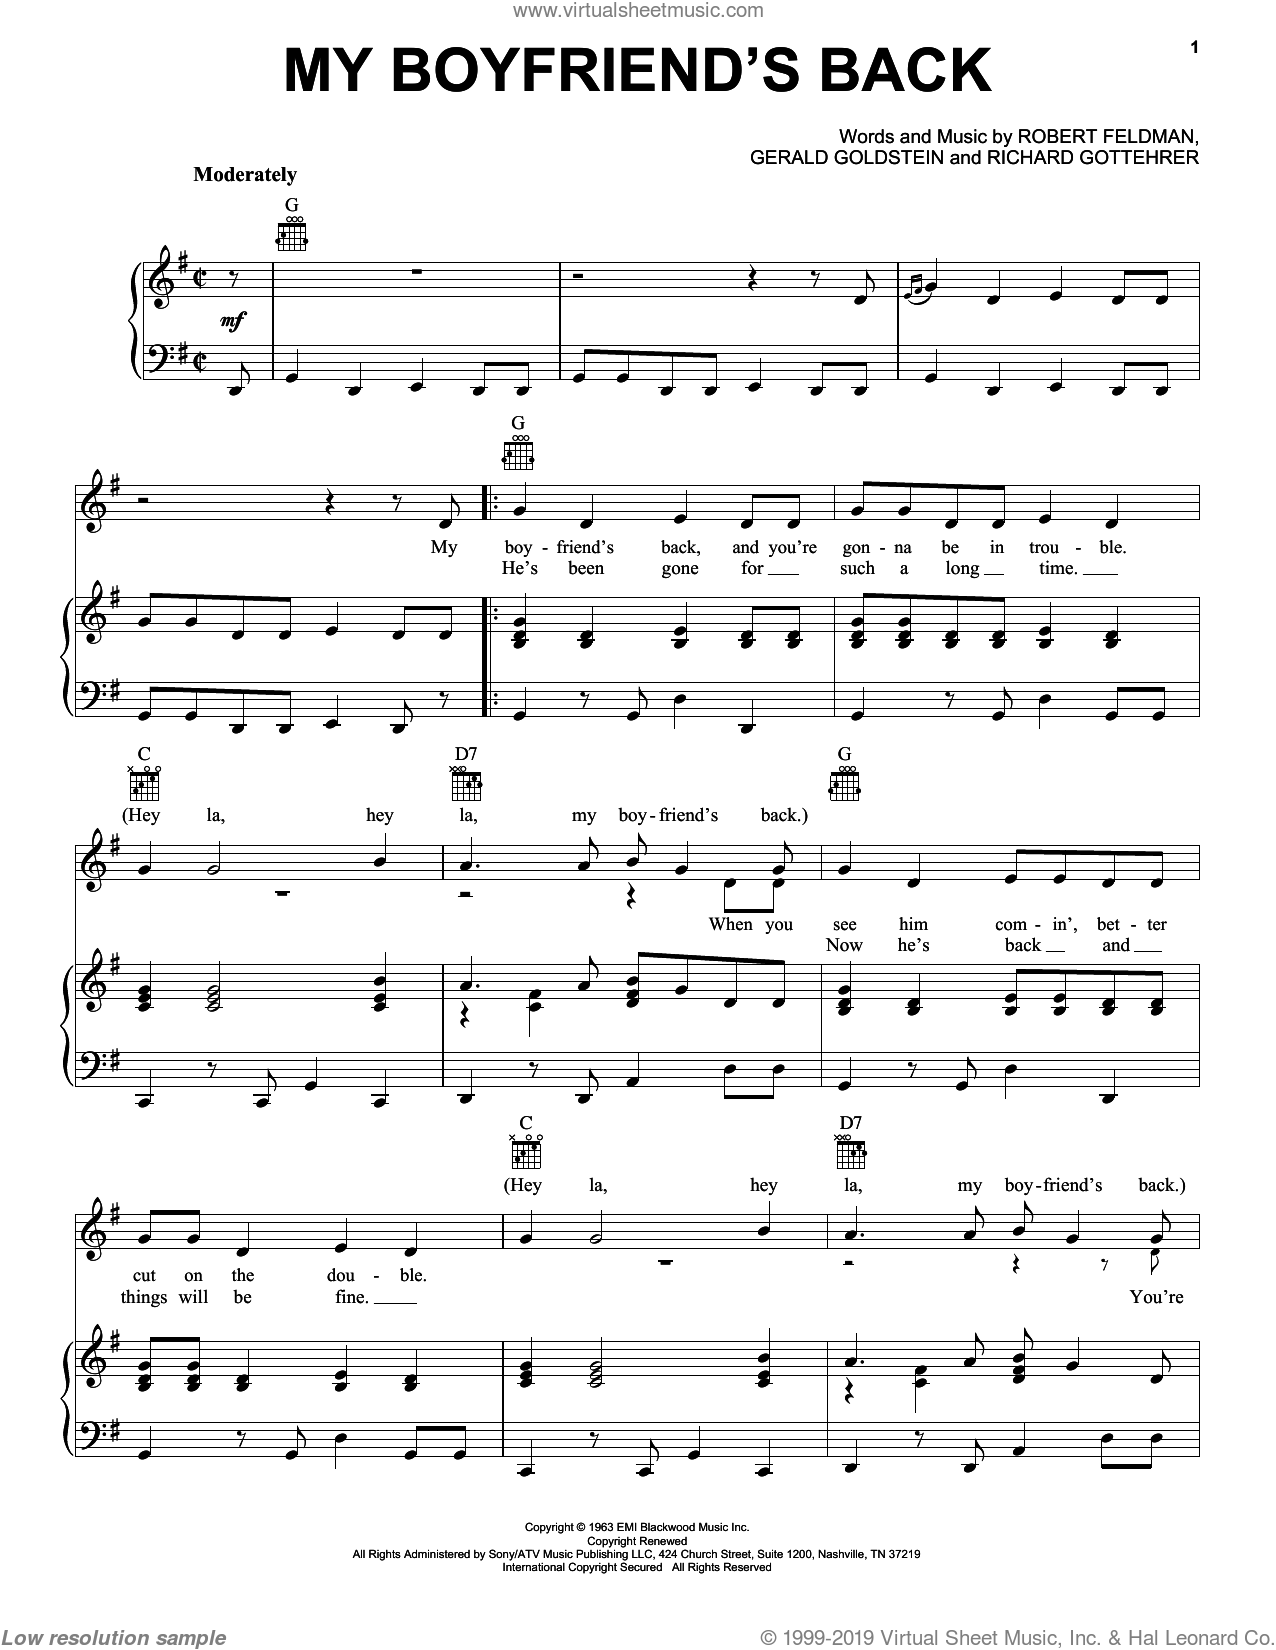 My Boyfriend's Back sheet music for voice, piano or guitar by Robert Feldman